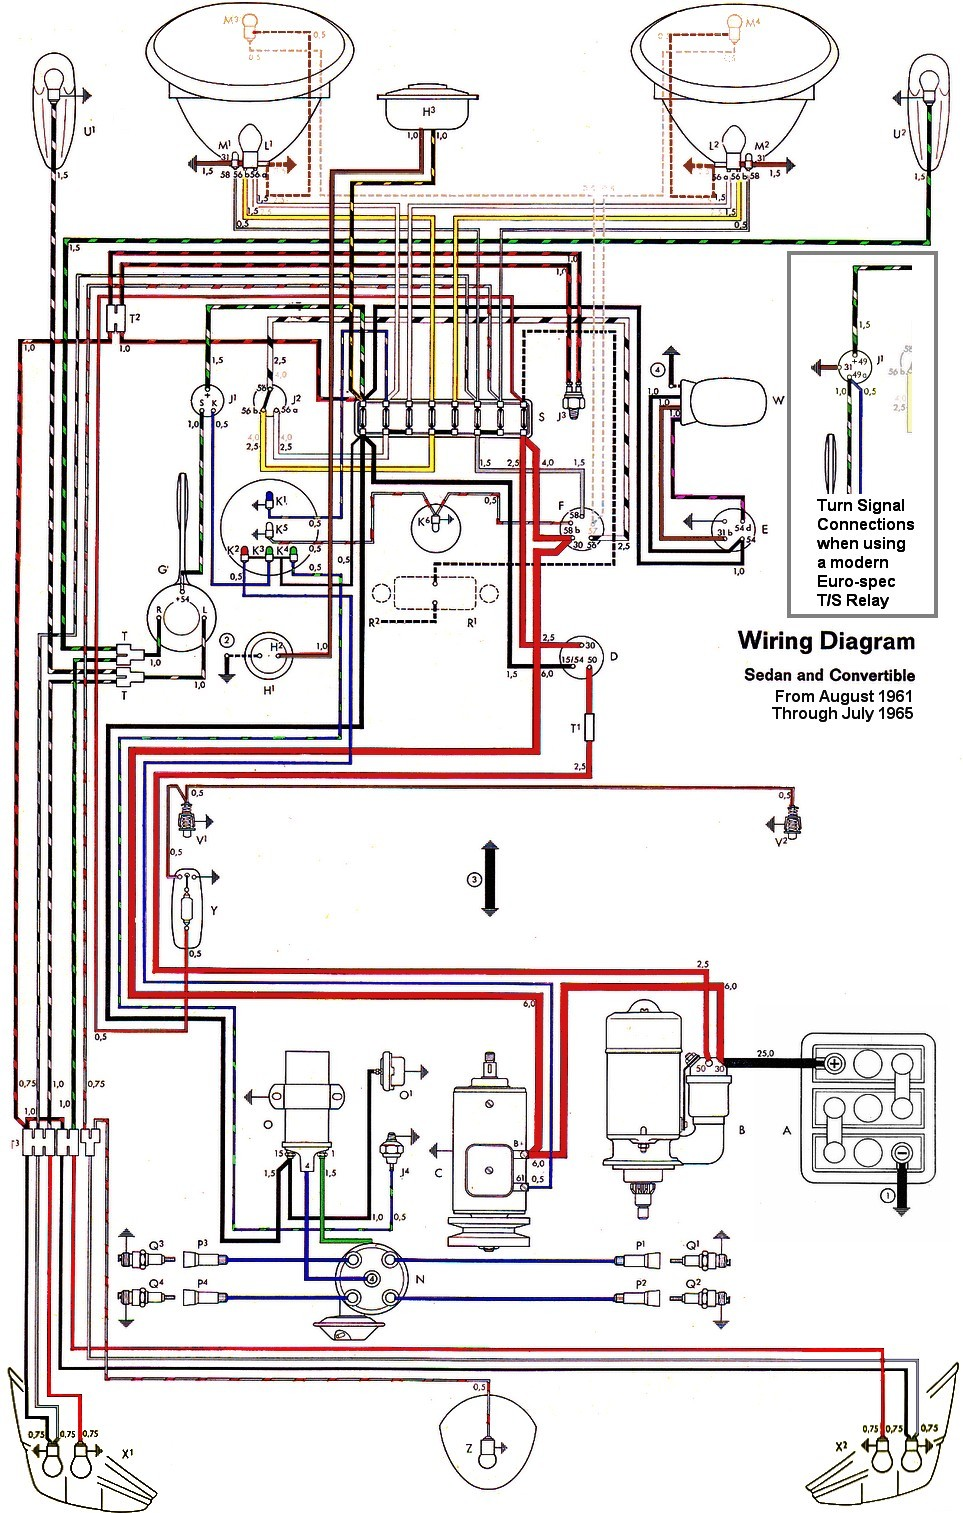 medium resolution of thesamba com type 1 wiring diagrams 1970 vw bus wiring diagram 1970 vw wiring diagram